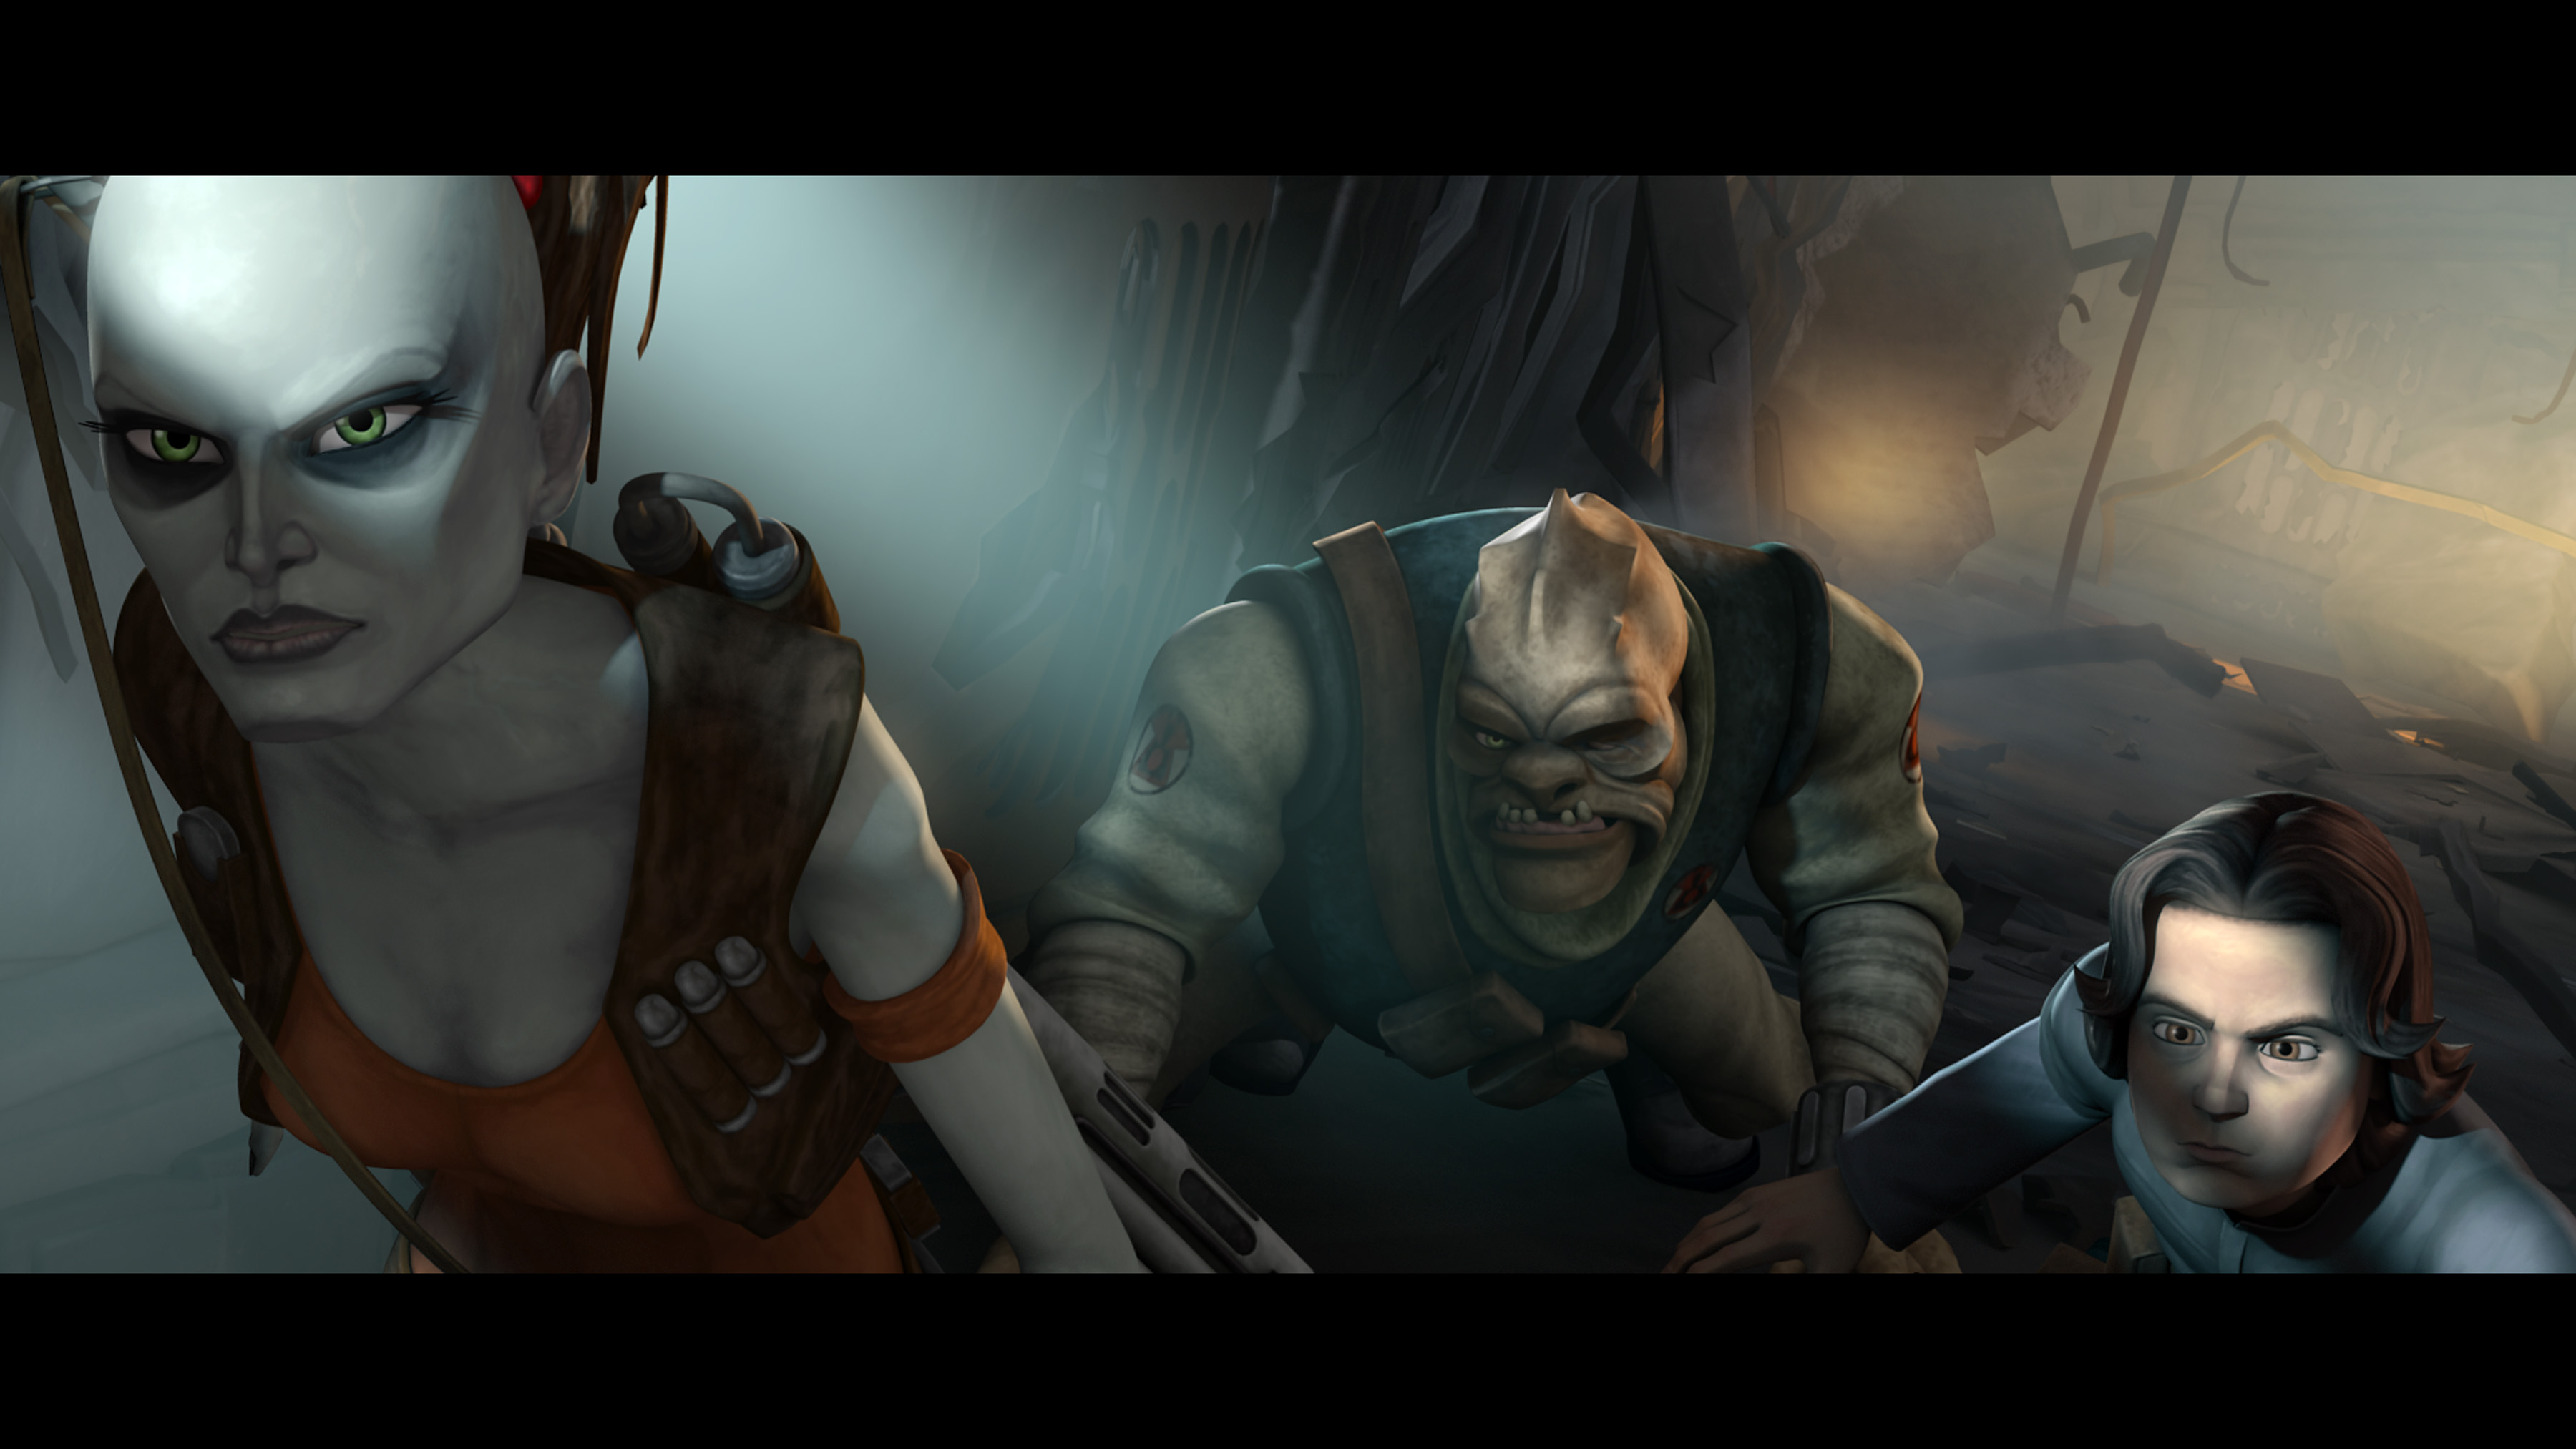 Bounty hunter Aurra Sing leads Boba Fett on a quest for revenge in the season finale of STAR WARS: THE CLONE WARS premiering at 9:00 p.m. ET/PT Friday, April 30 on Cartoon Network. /TM & © 2010 Lucasfilm Ltd. All rights reserved.